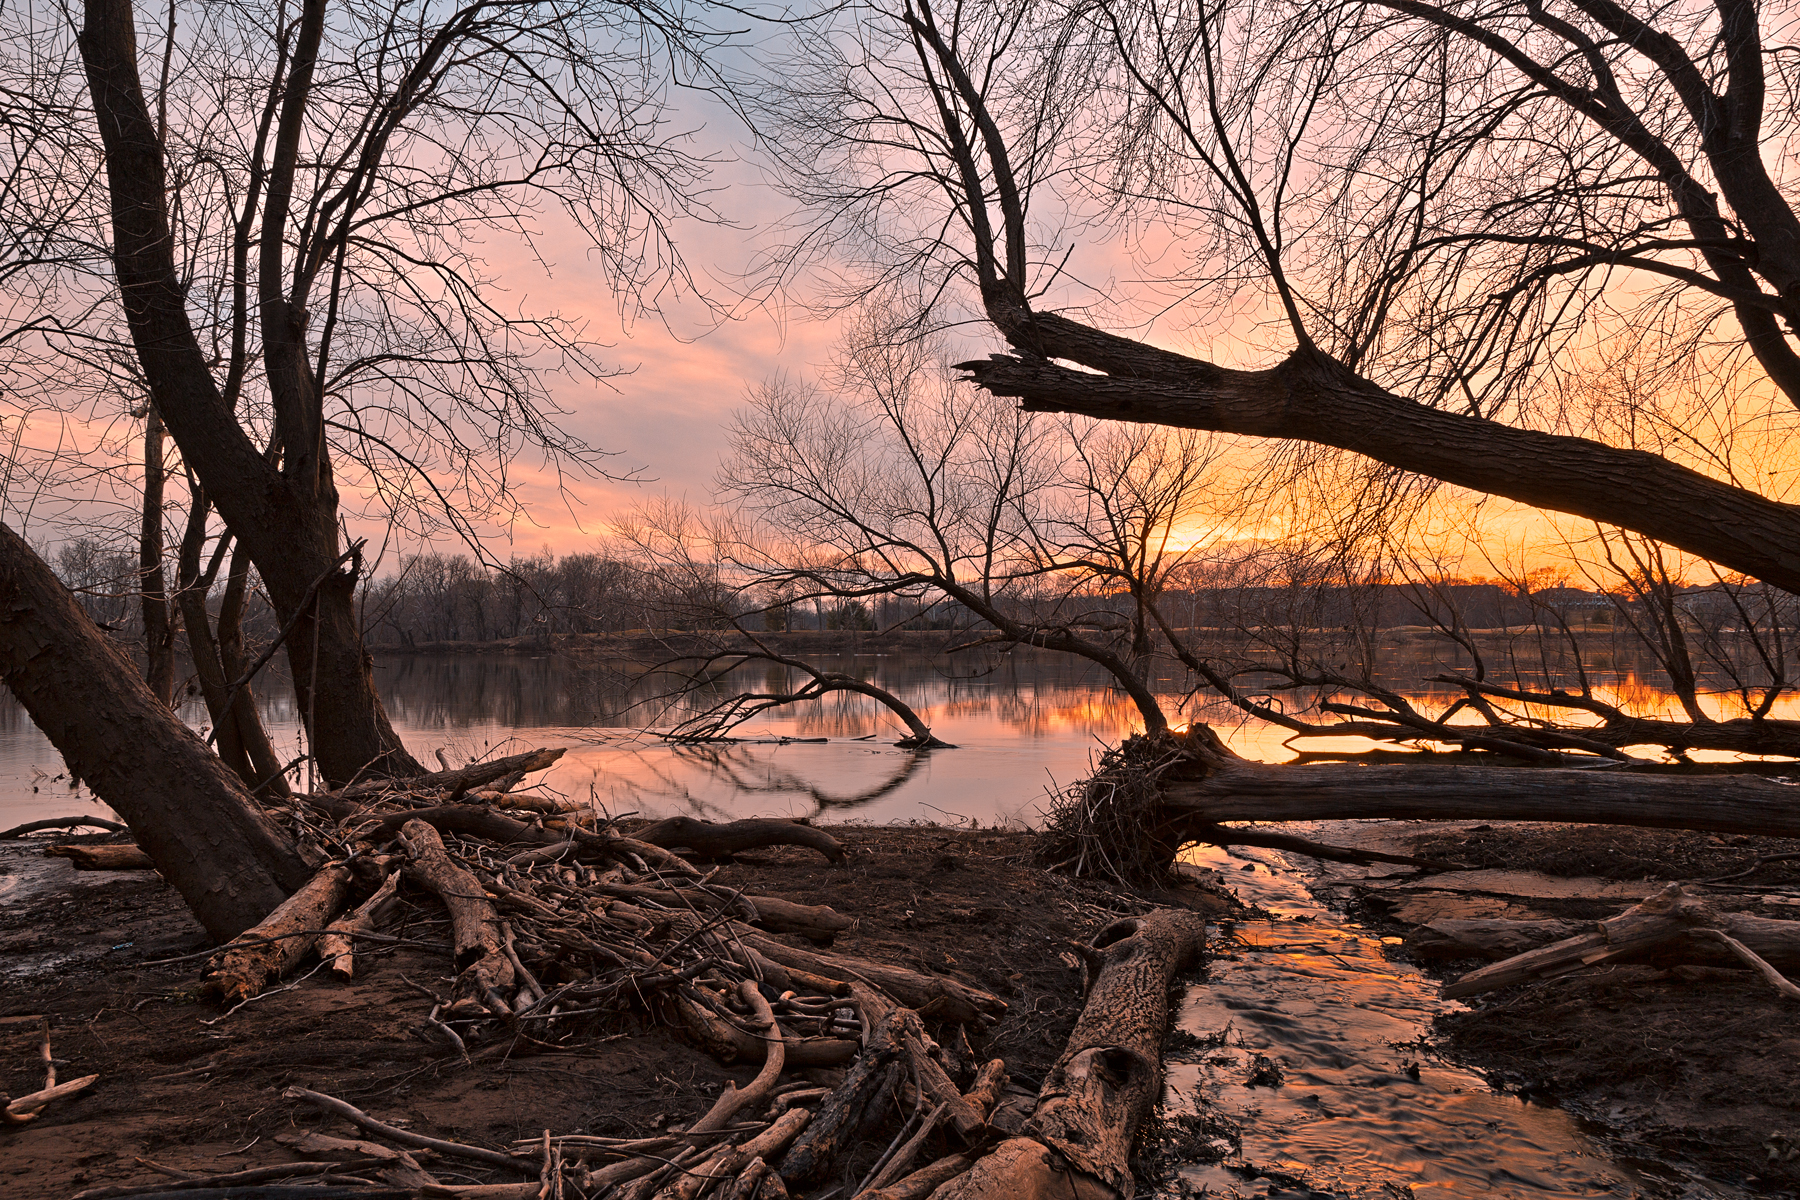 Potomac Sunset - HDR, America, Serene, Reflective, River, HQ Photo